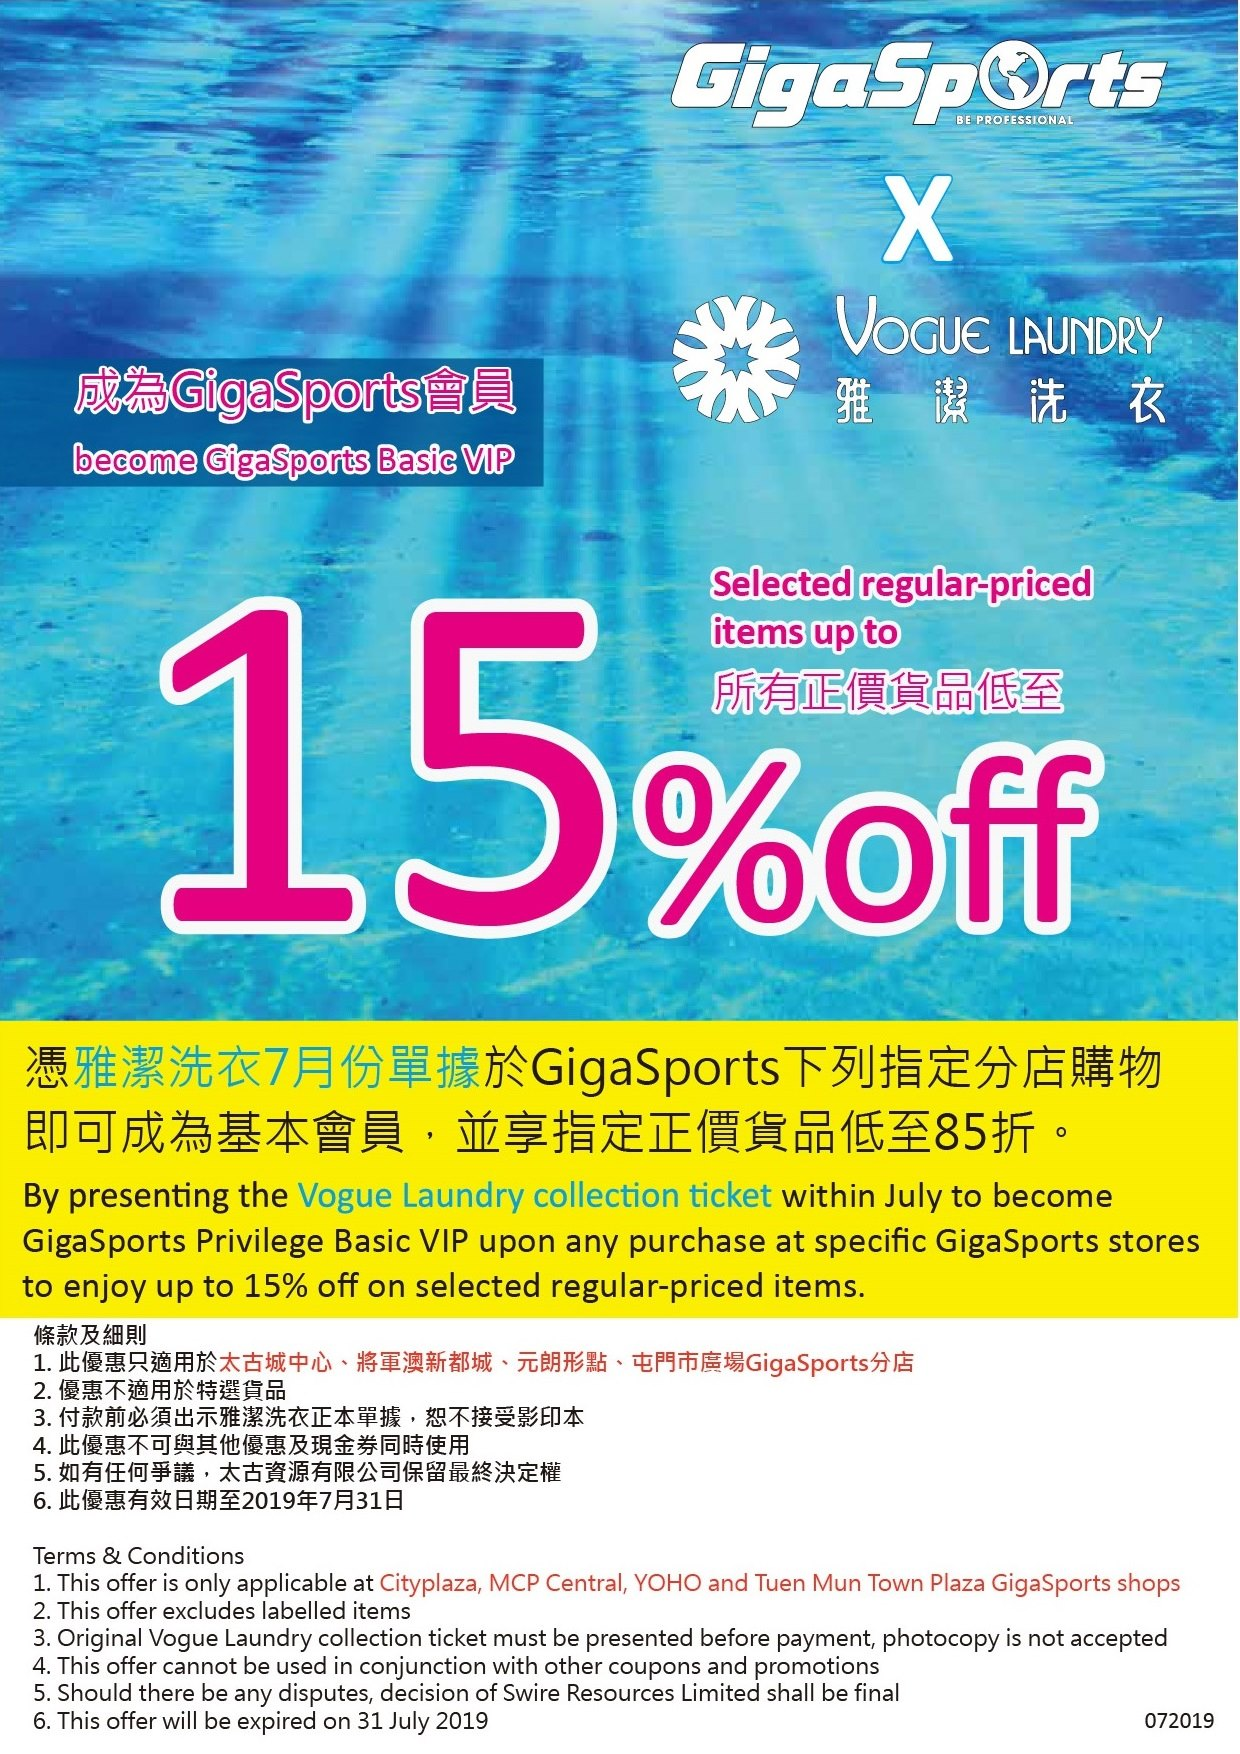 GigaSports membership offer and up to 15% off for selected priced items